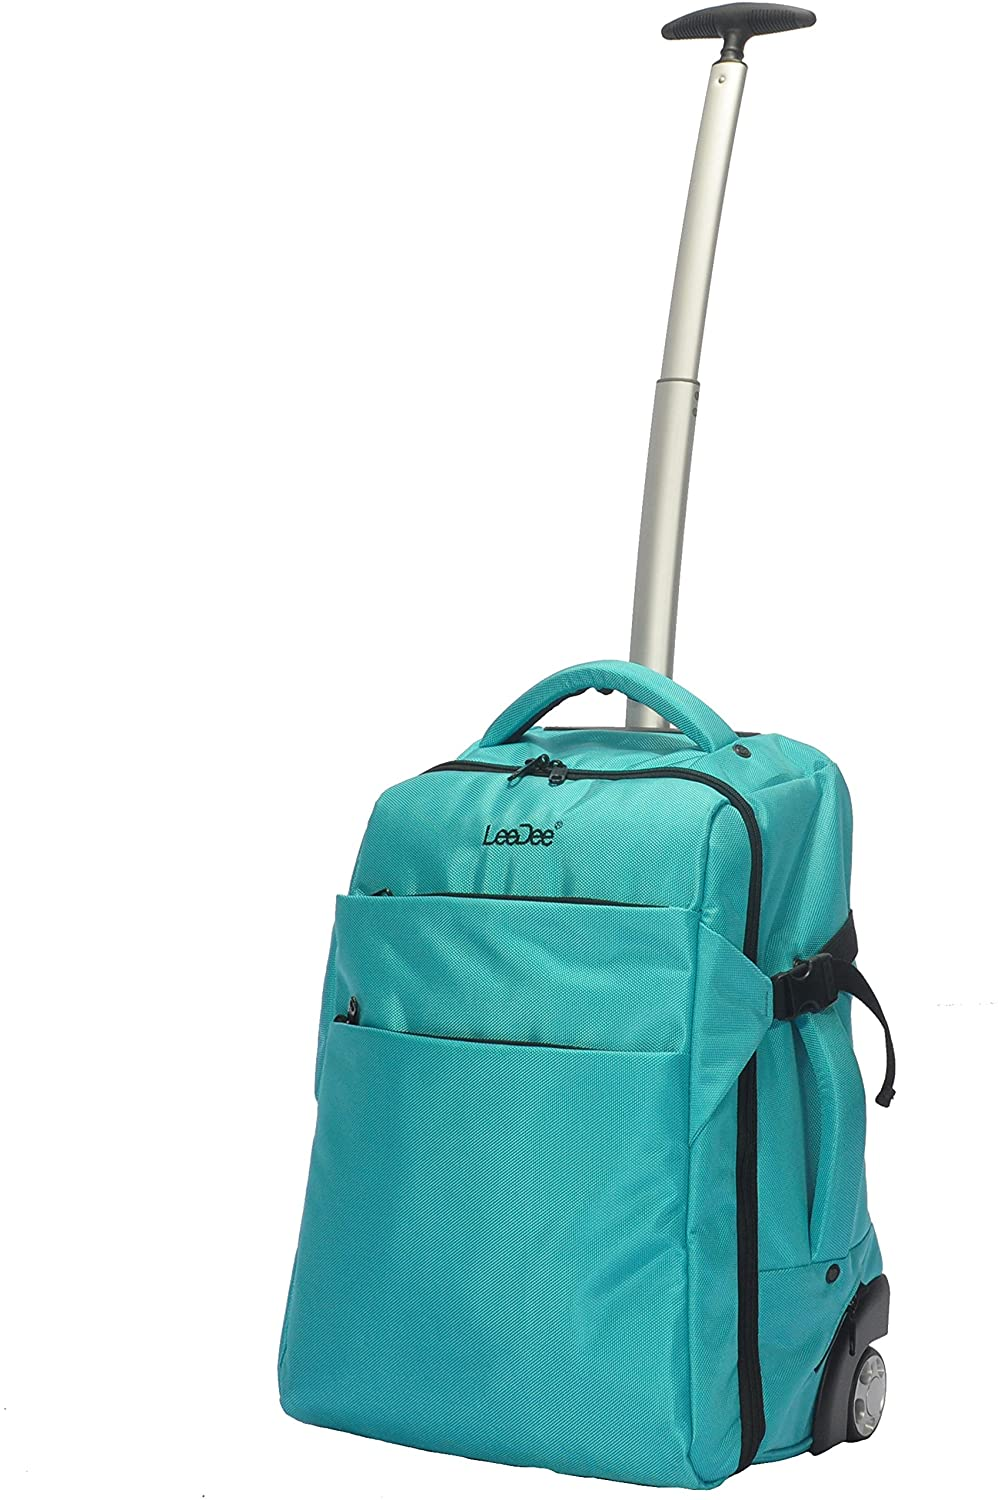 3-in-1 Cabin Bag with Wheels